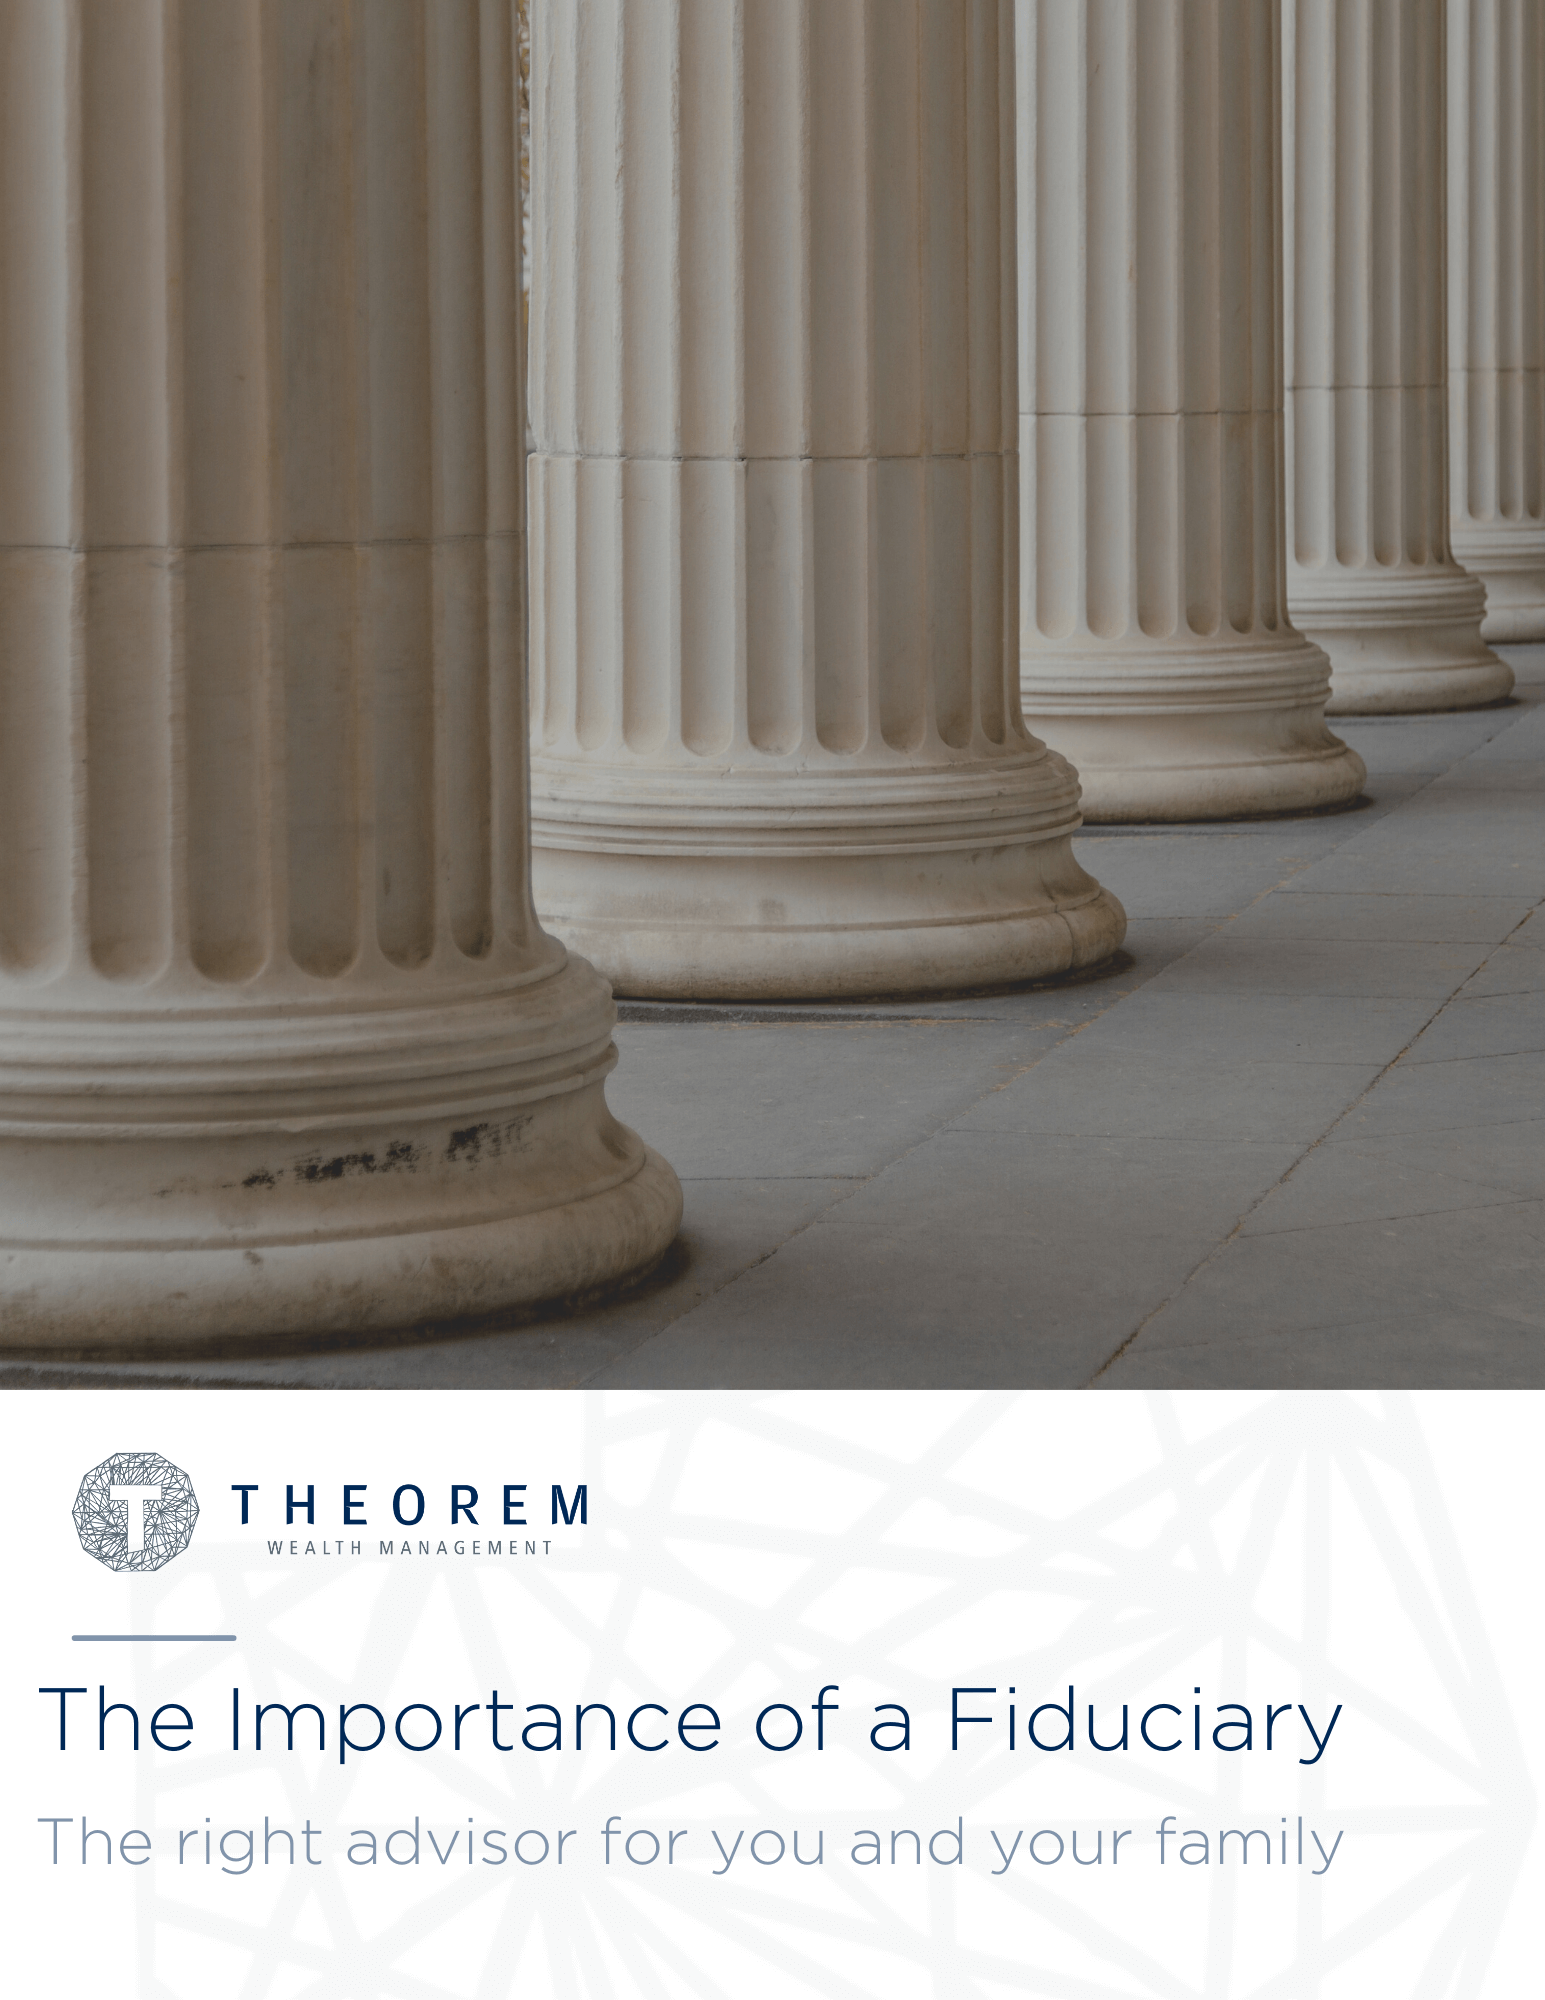 The Importance of a Fiduciary